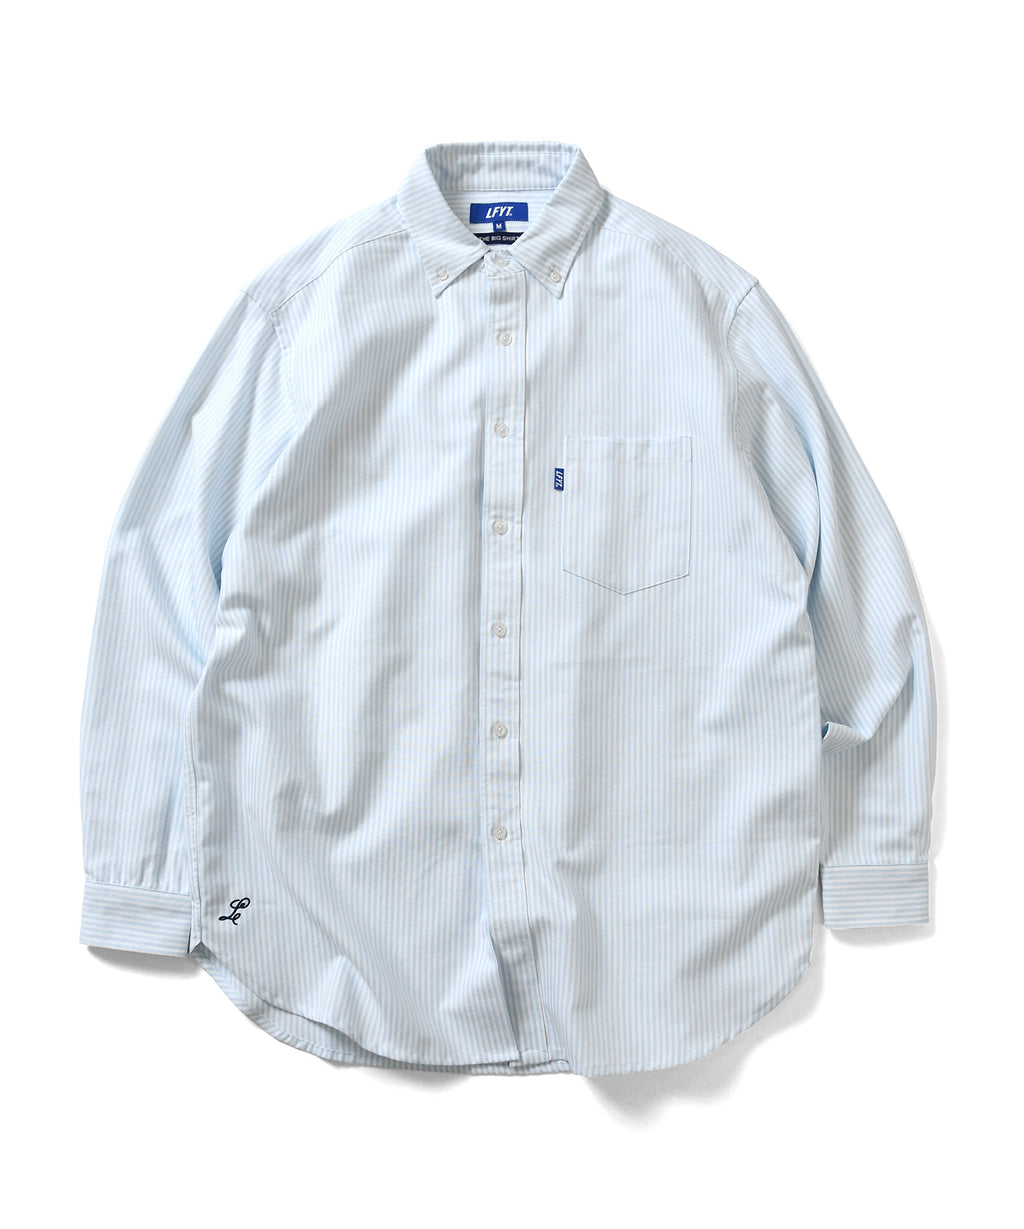 BIG SILHOUETTE STRIPED OXFORD SHIRT BLUE LA200201